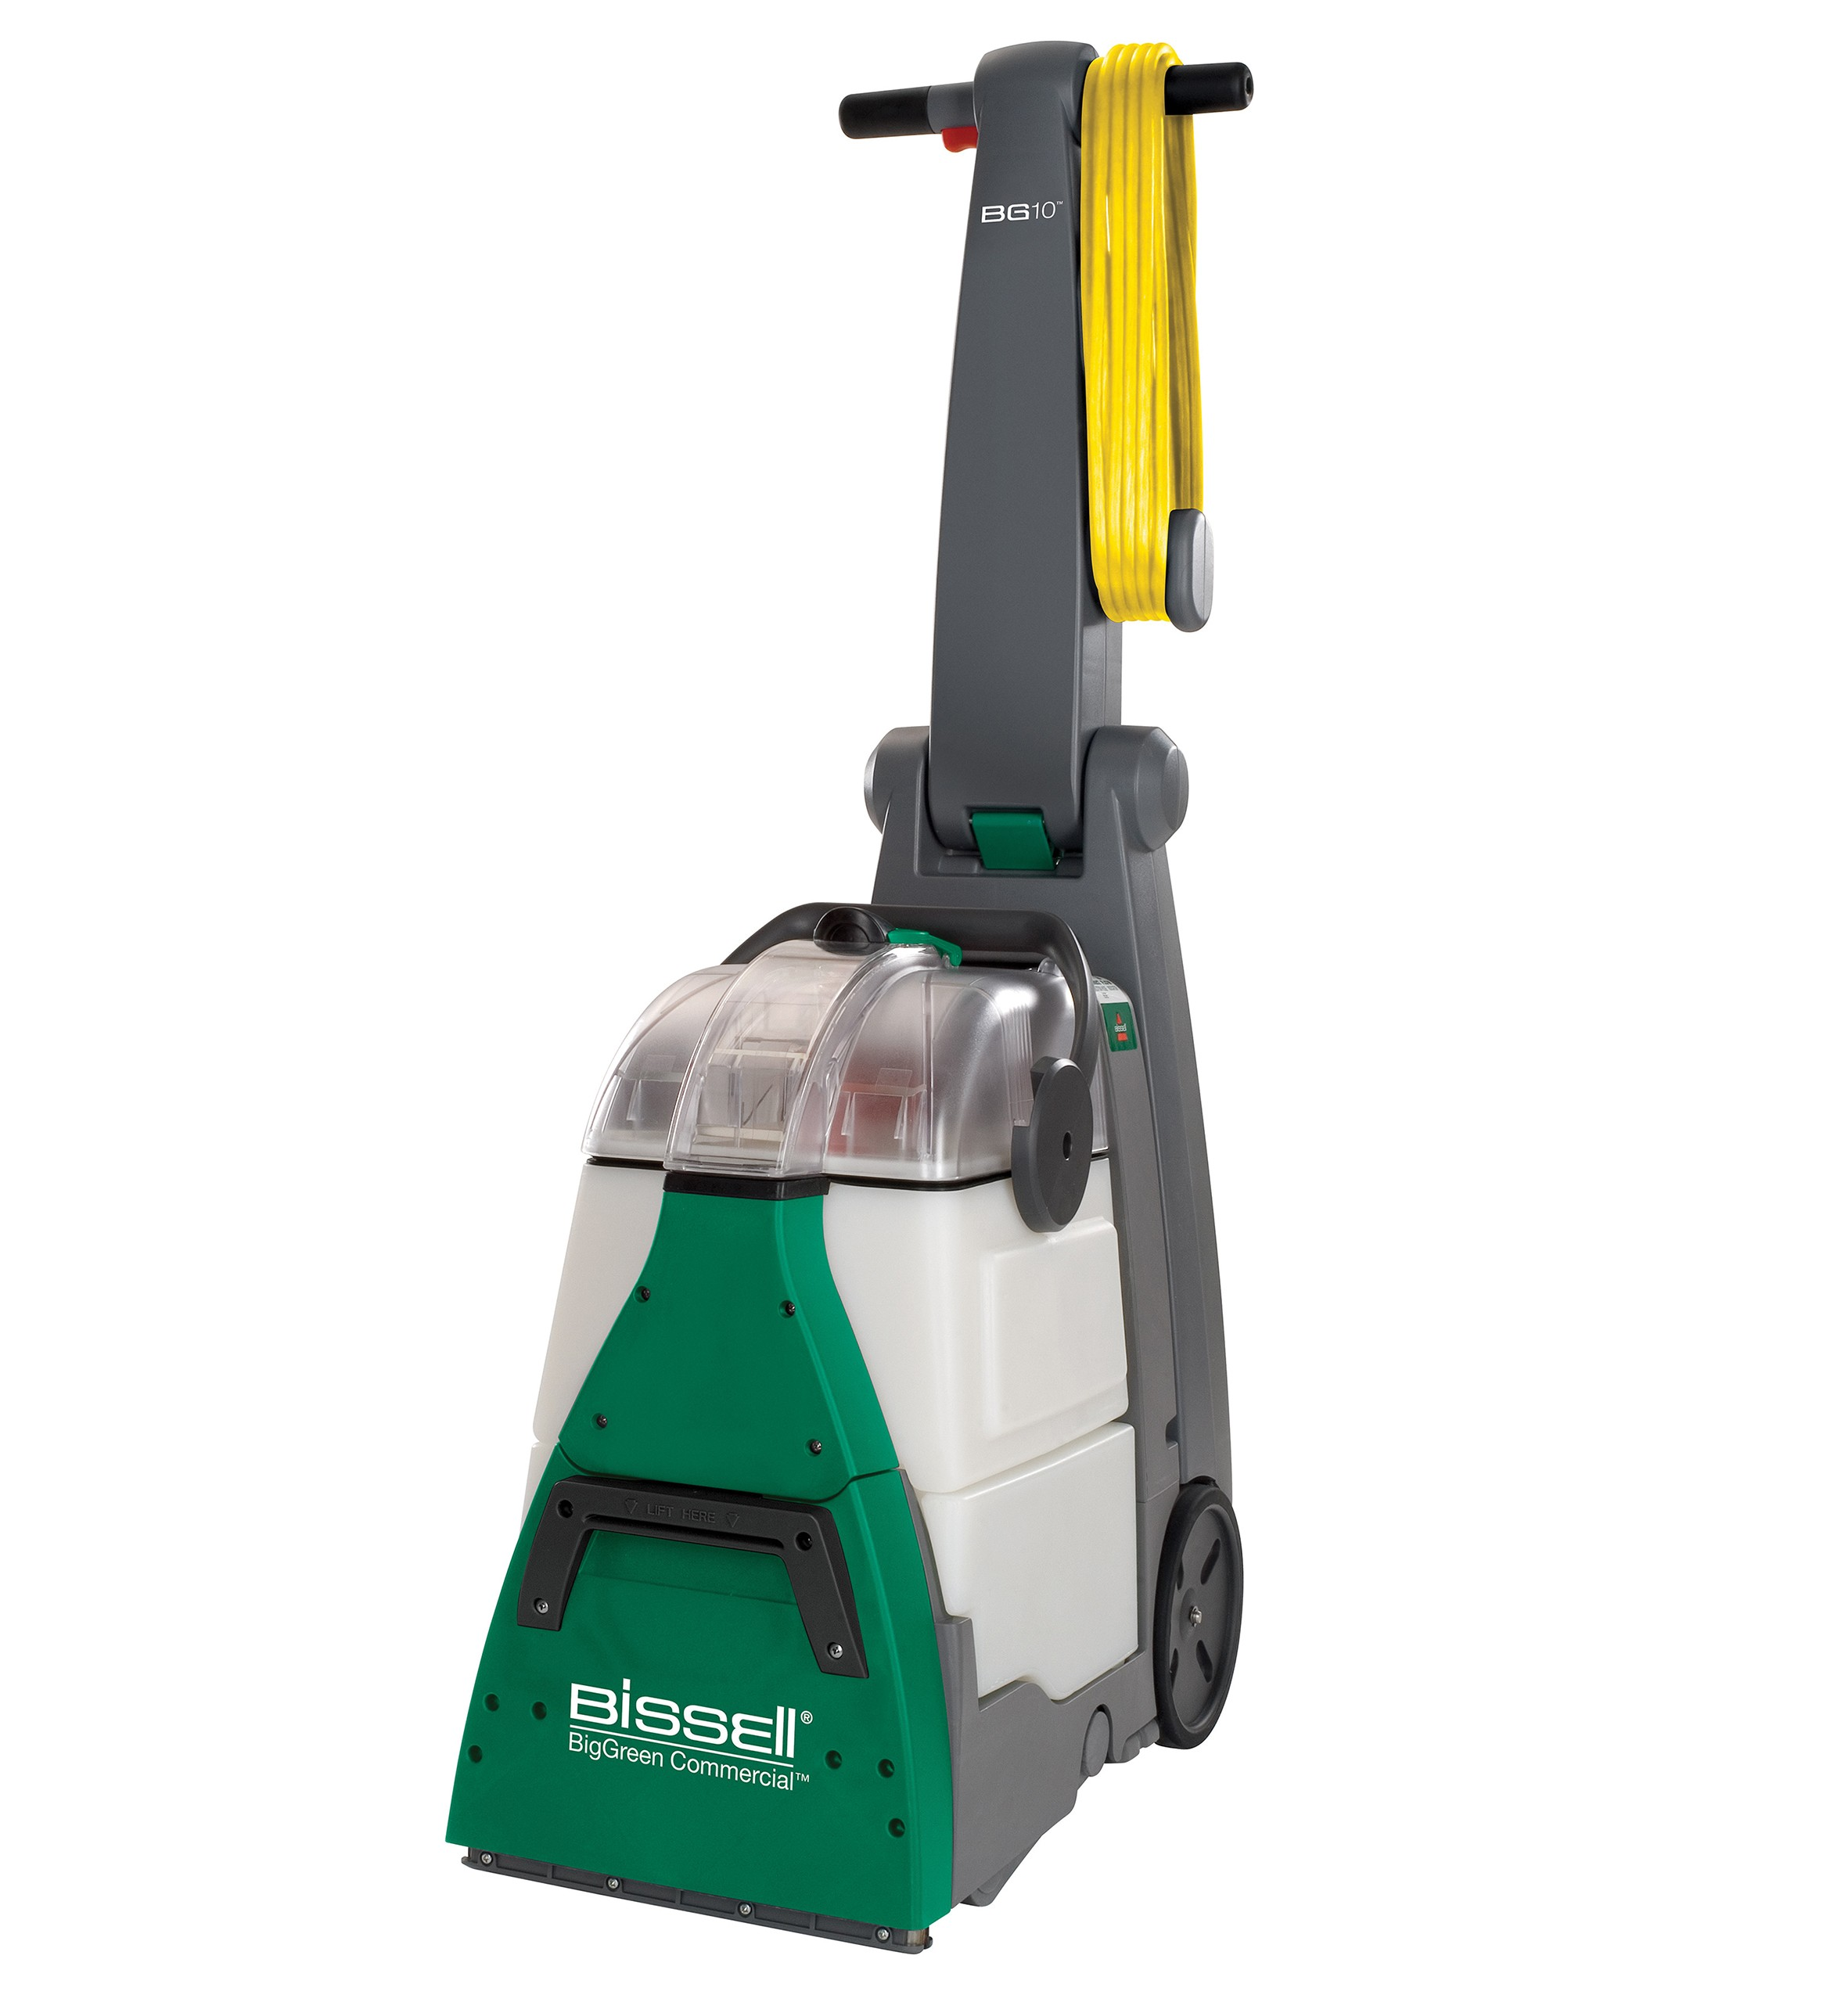 Bissell Bg10 Commercial Carpet Extraction Deep Cleaning